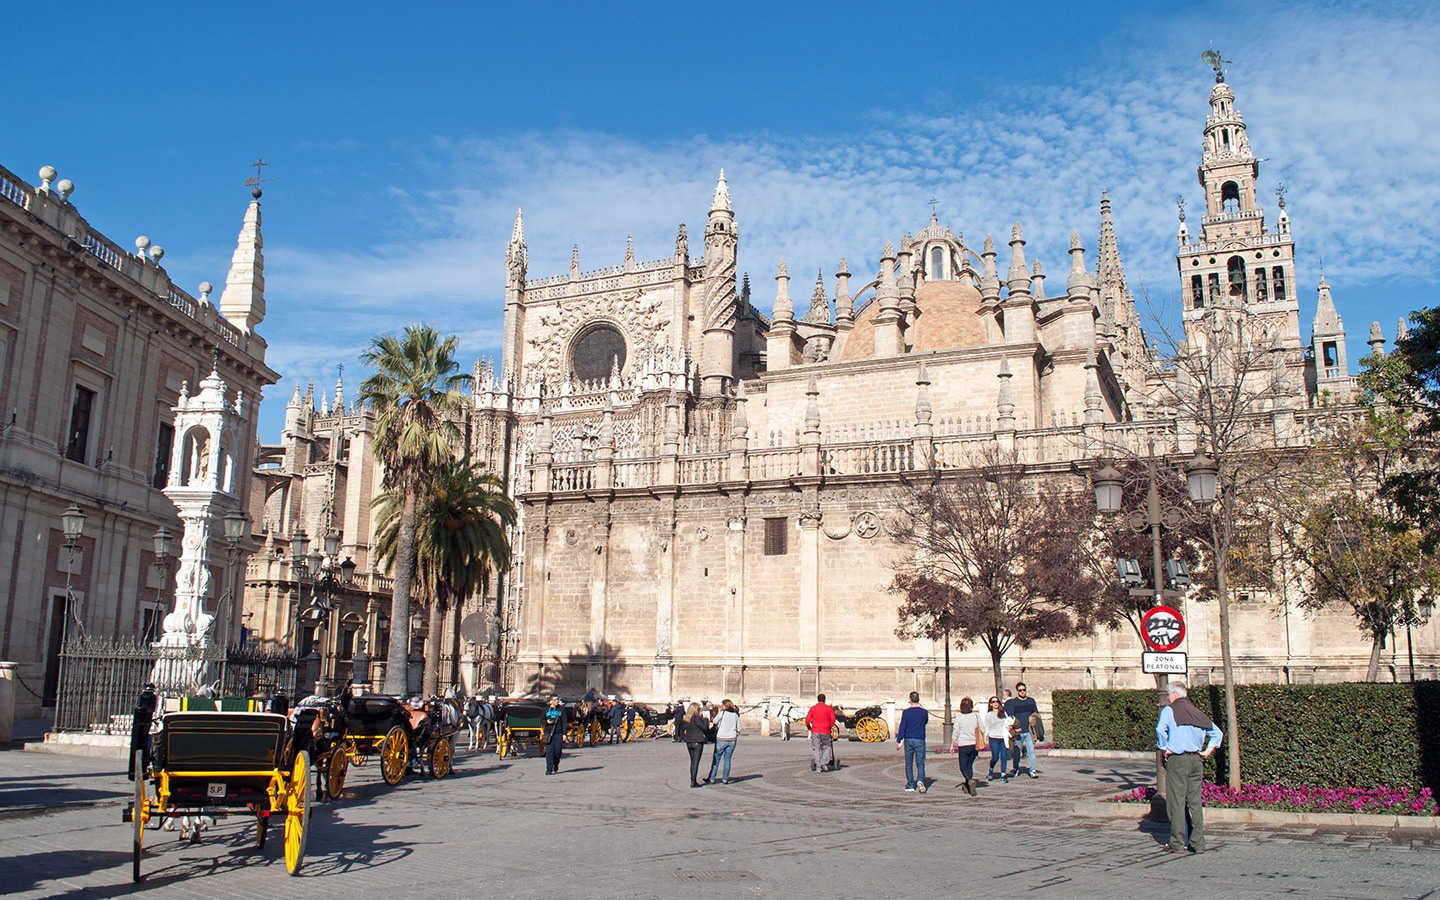 The side of Seville cathedral